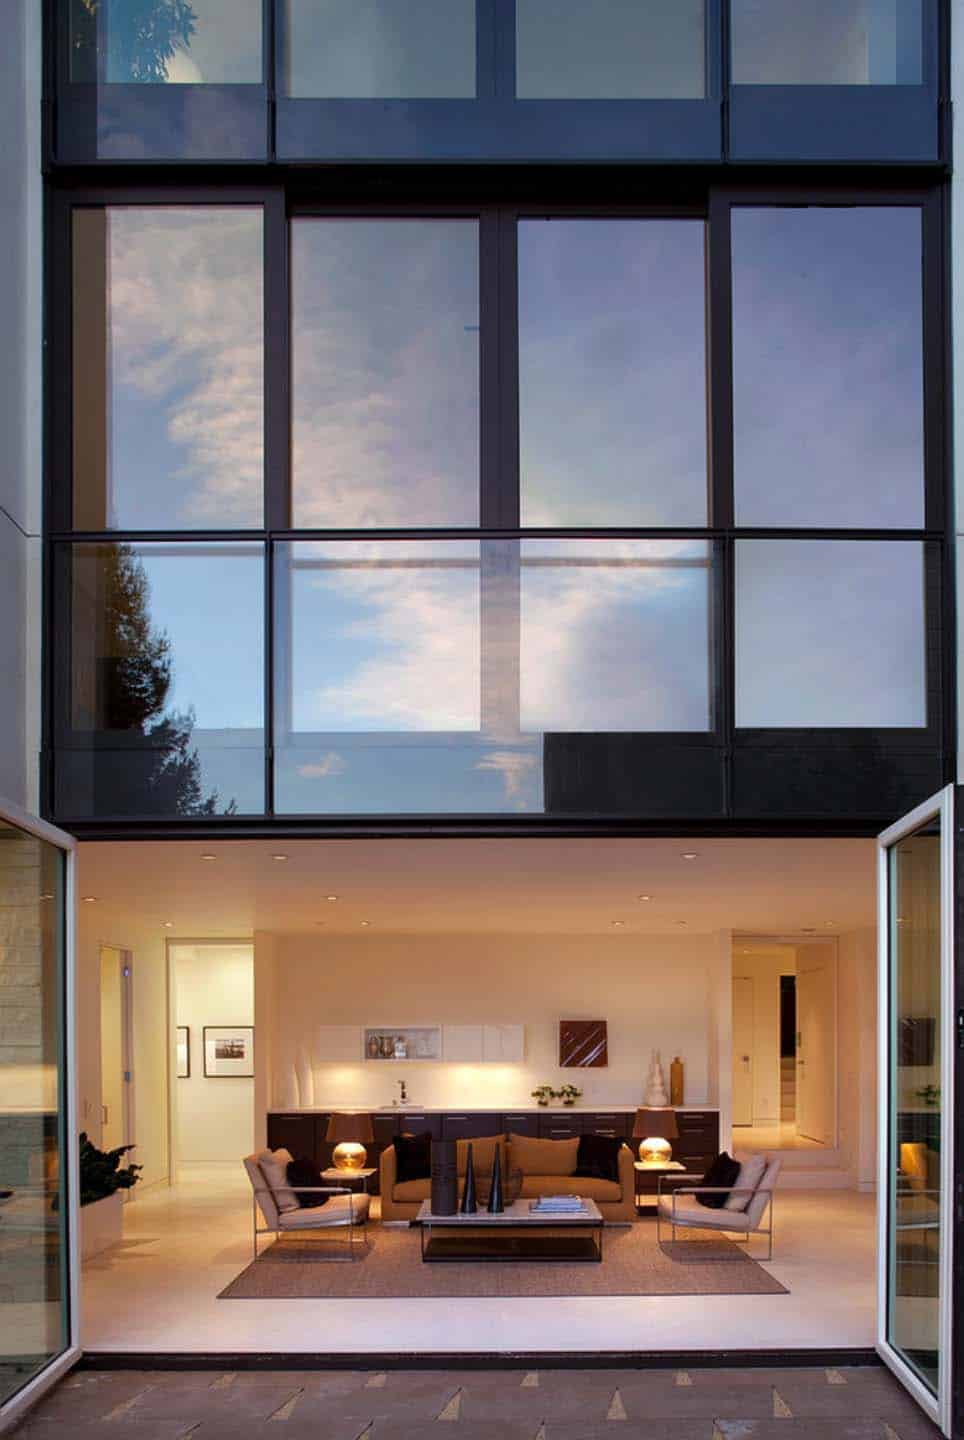 Modern Architecture LEED Platinum Home-37-1 Kindesign